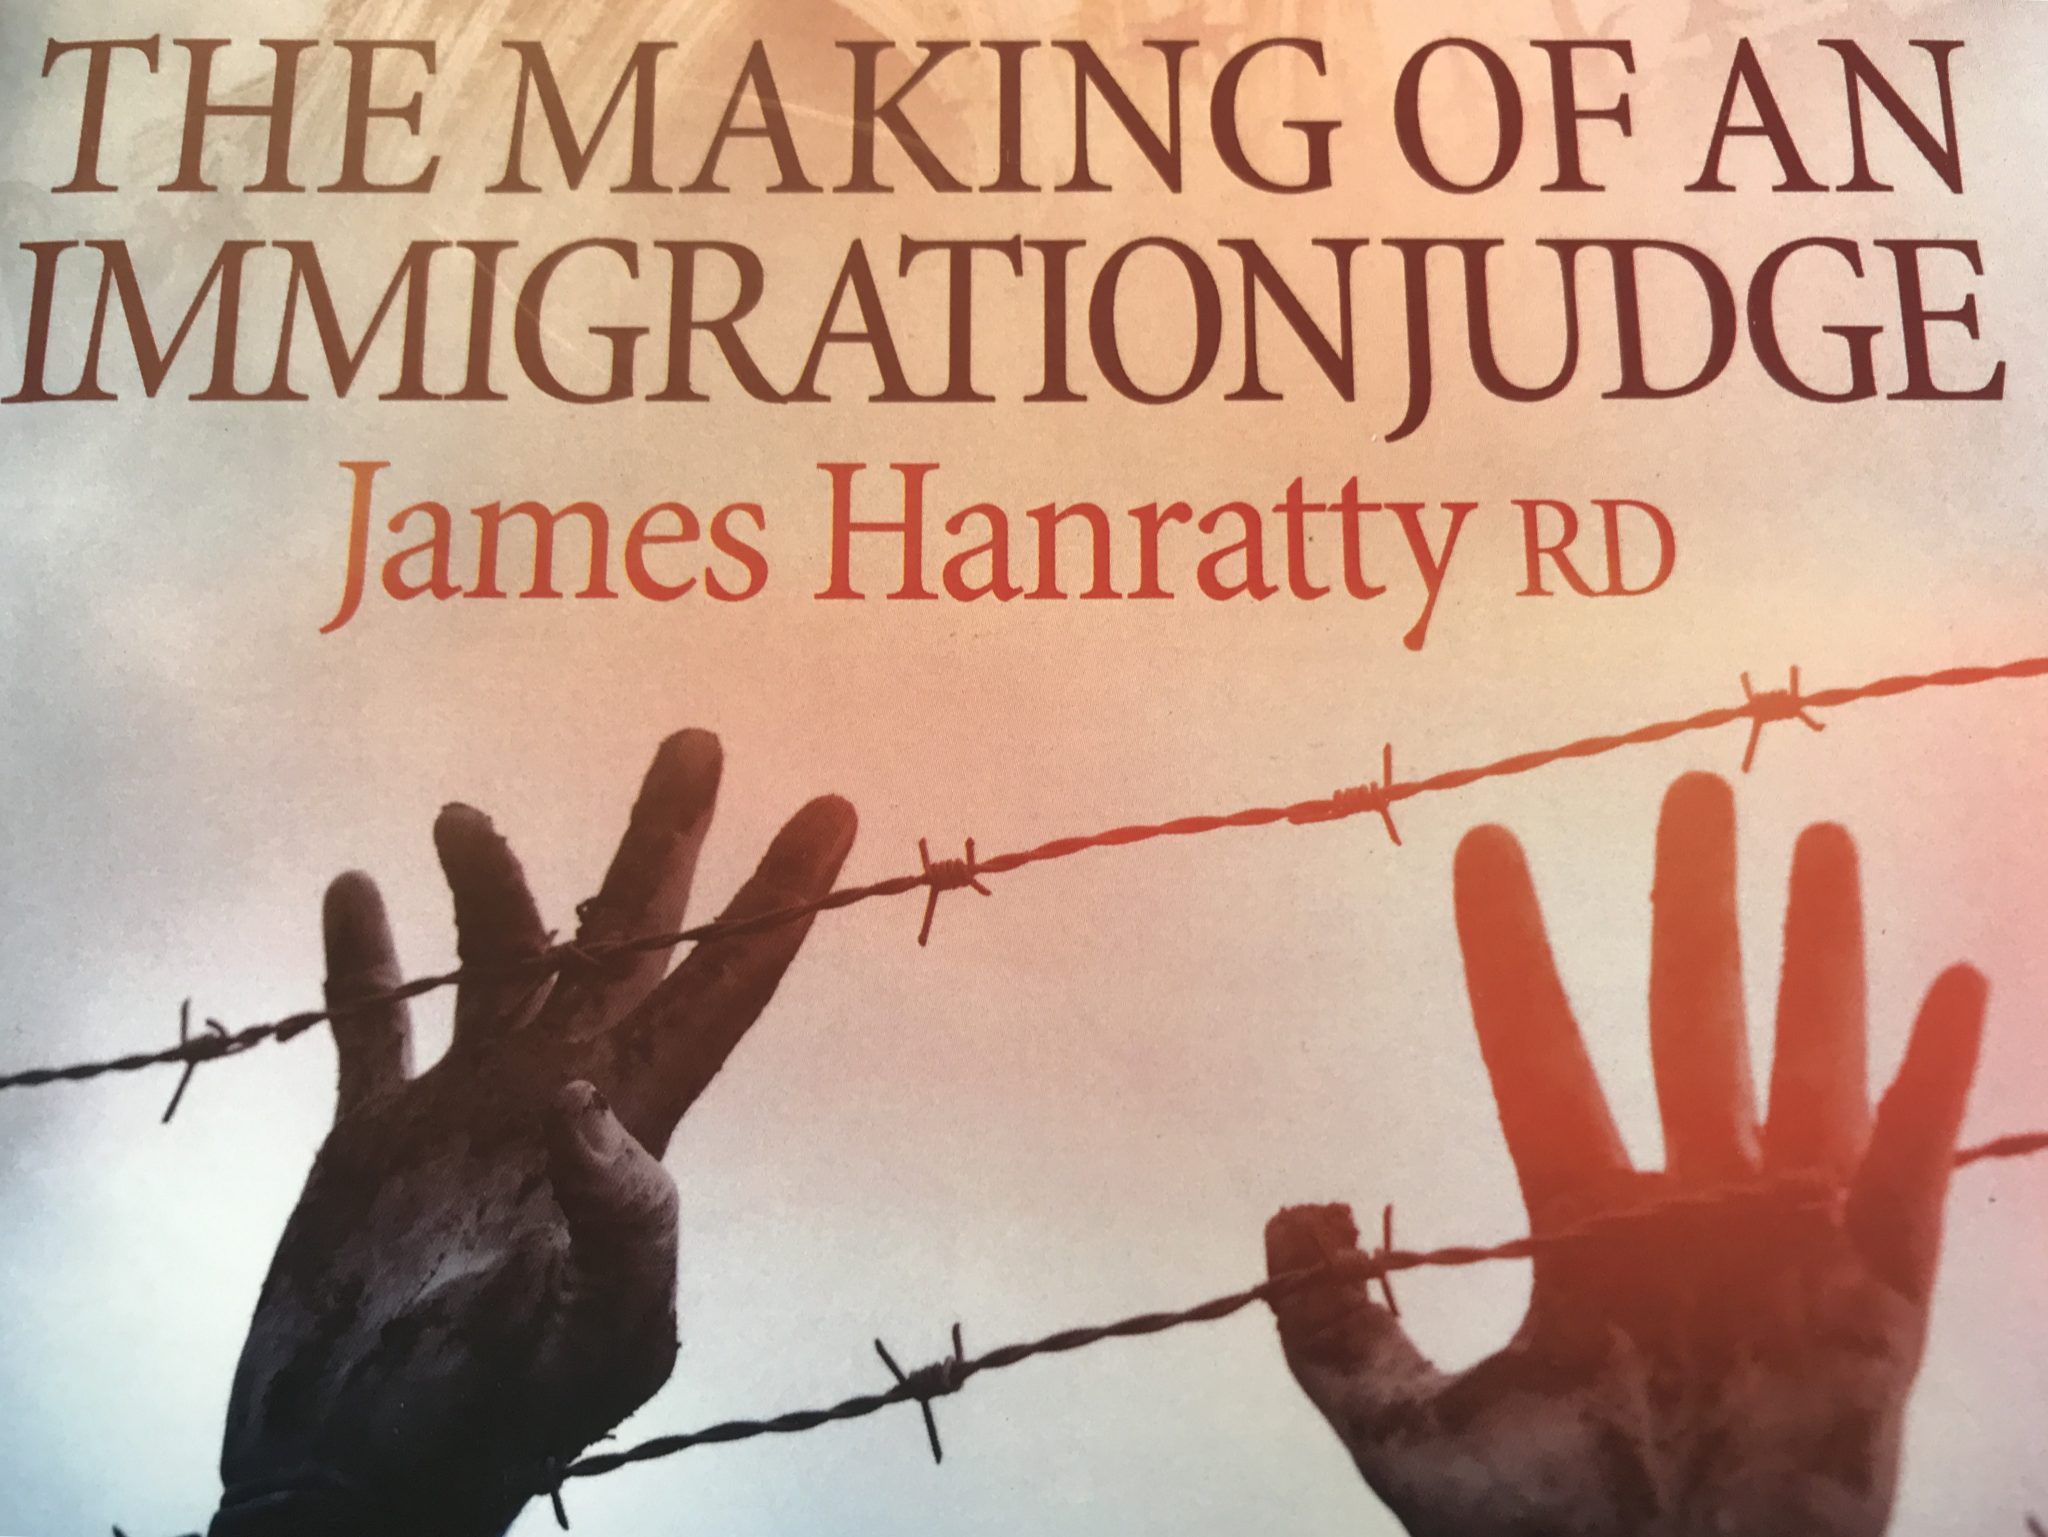 Book review: The Making of an Immigration Judge by James Hanratty RD